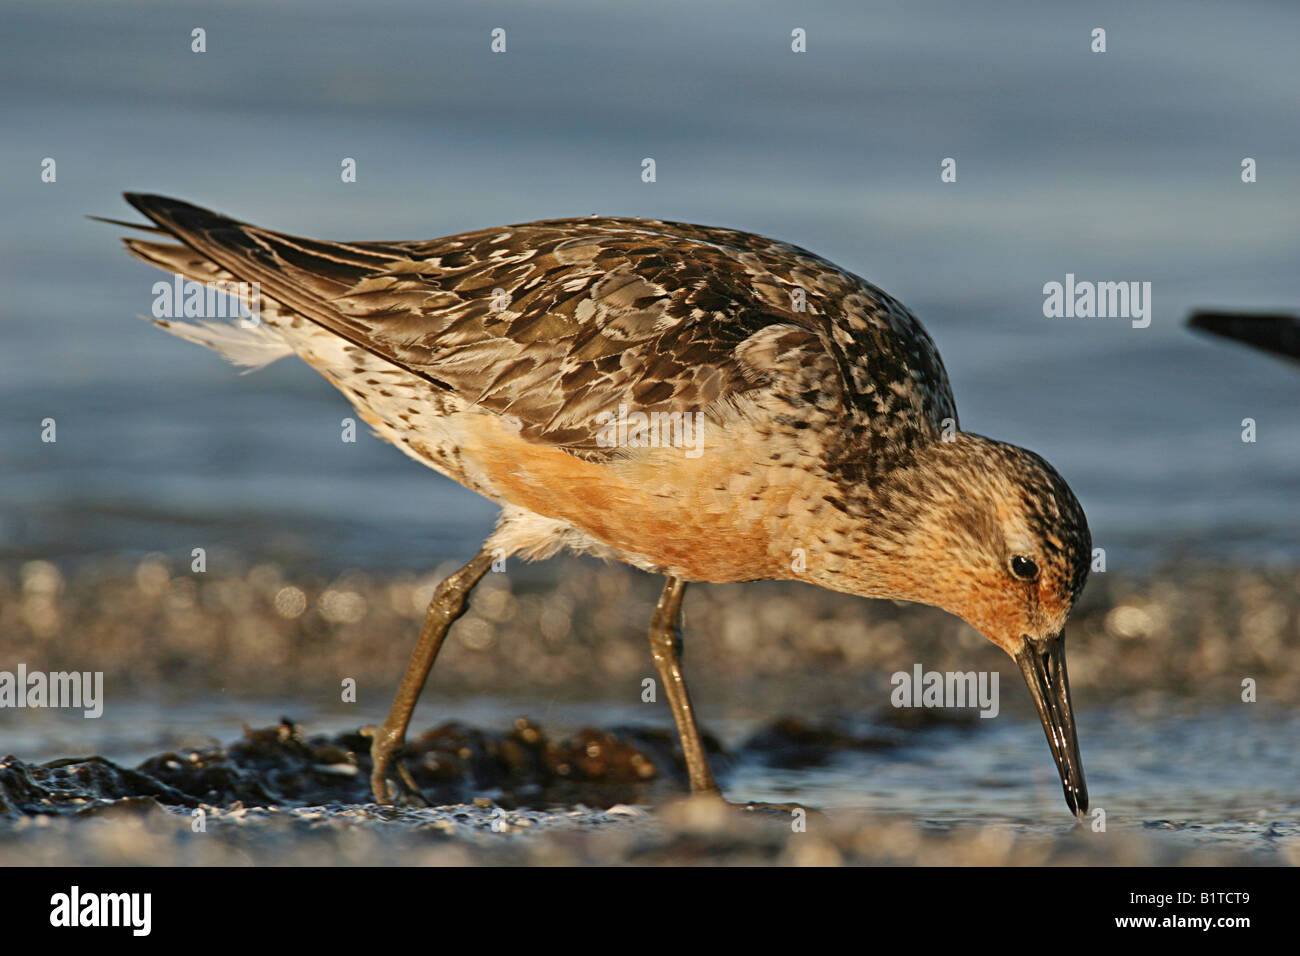 Red Knot Standing Stock Photos Images Alamy Redknot Shoes Tech Brown Calidris Canutus Image